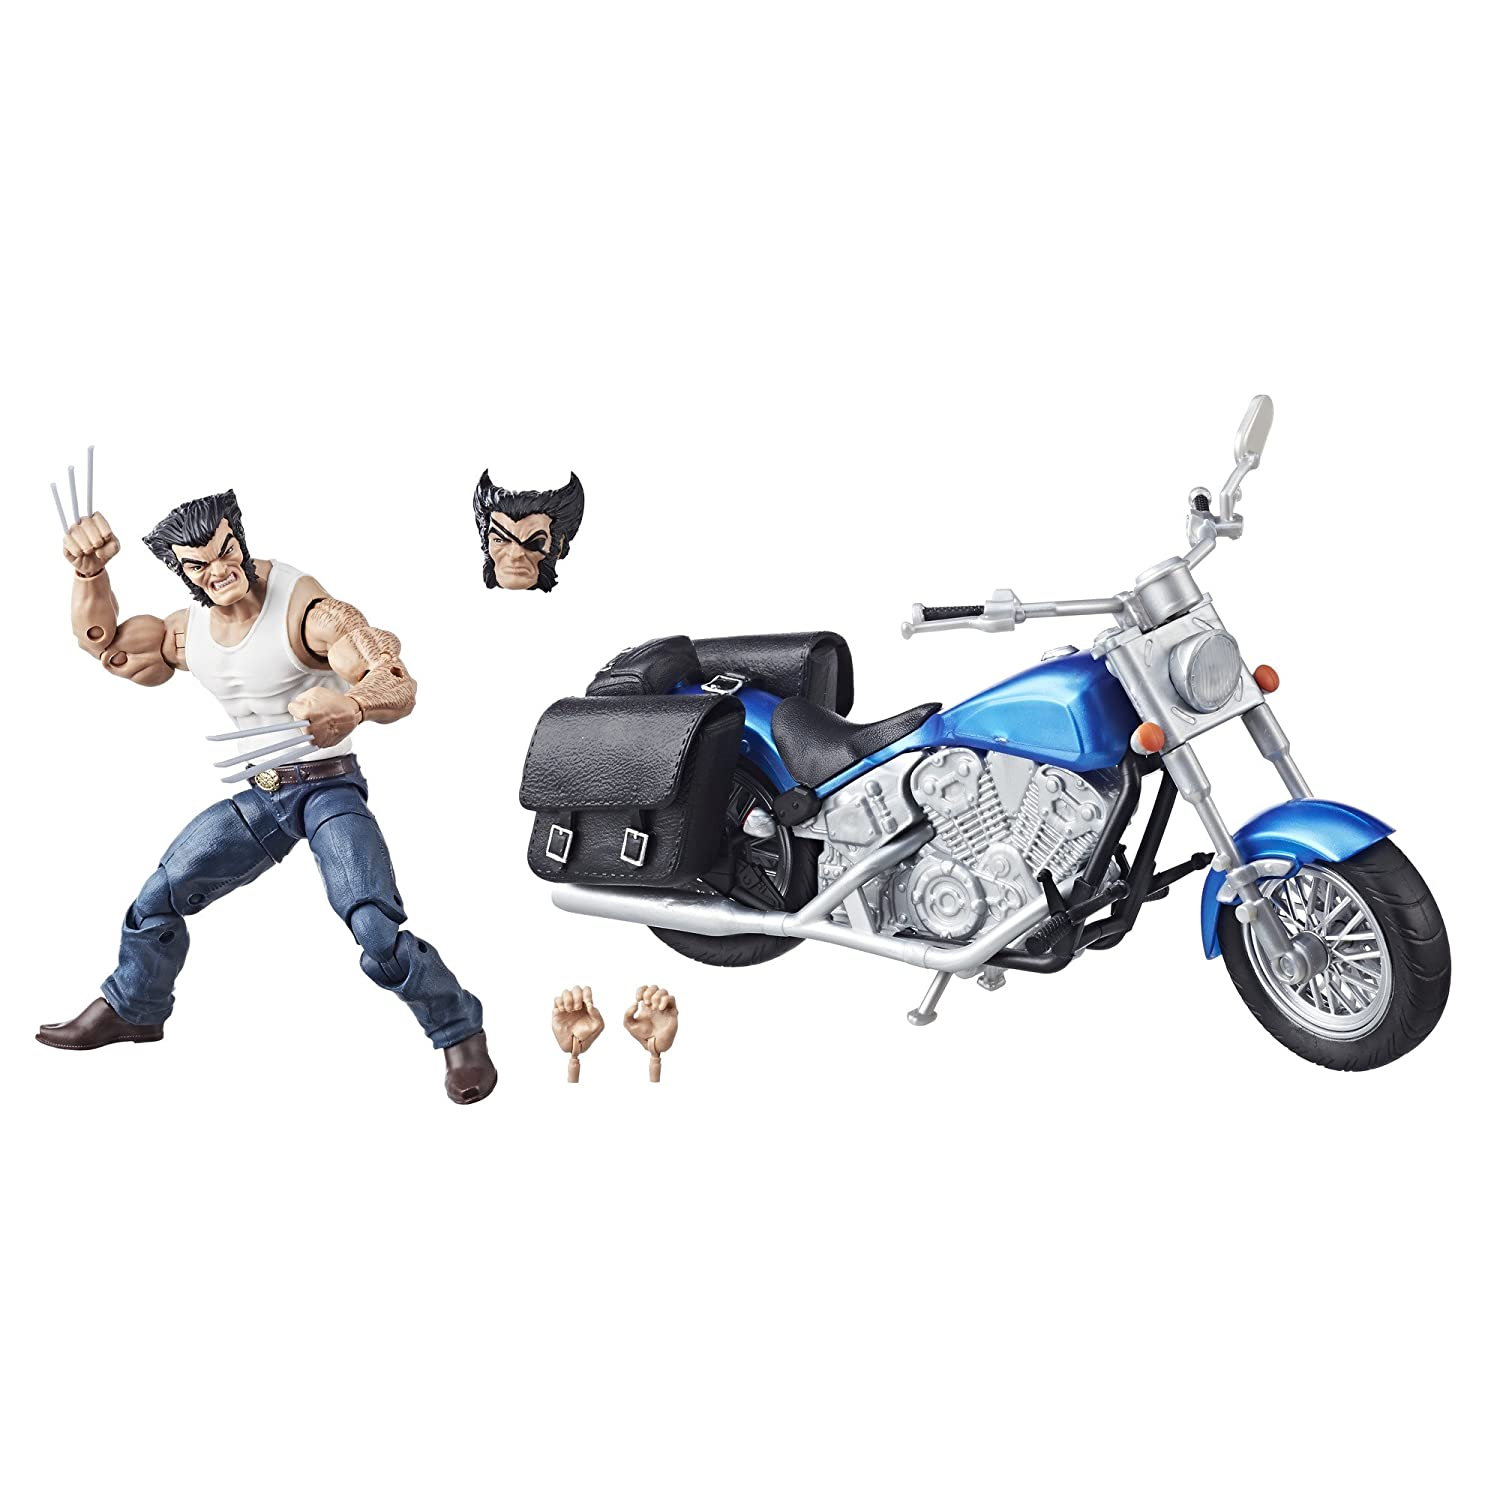 Marvel Legends Series 6-inch Wolverine and Motorcycle Hasbro E1377